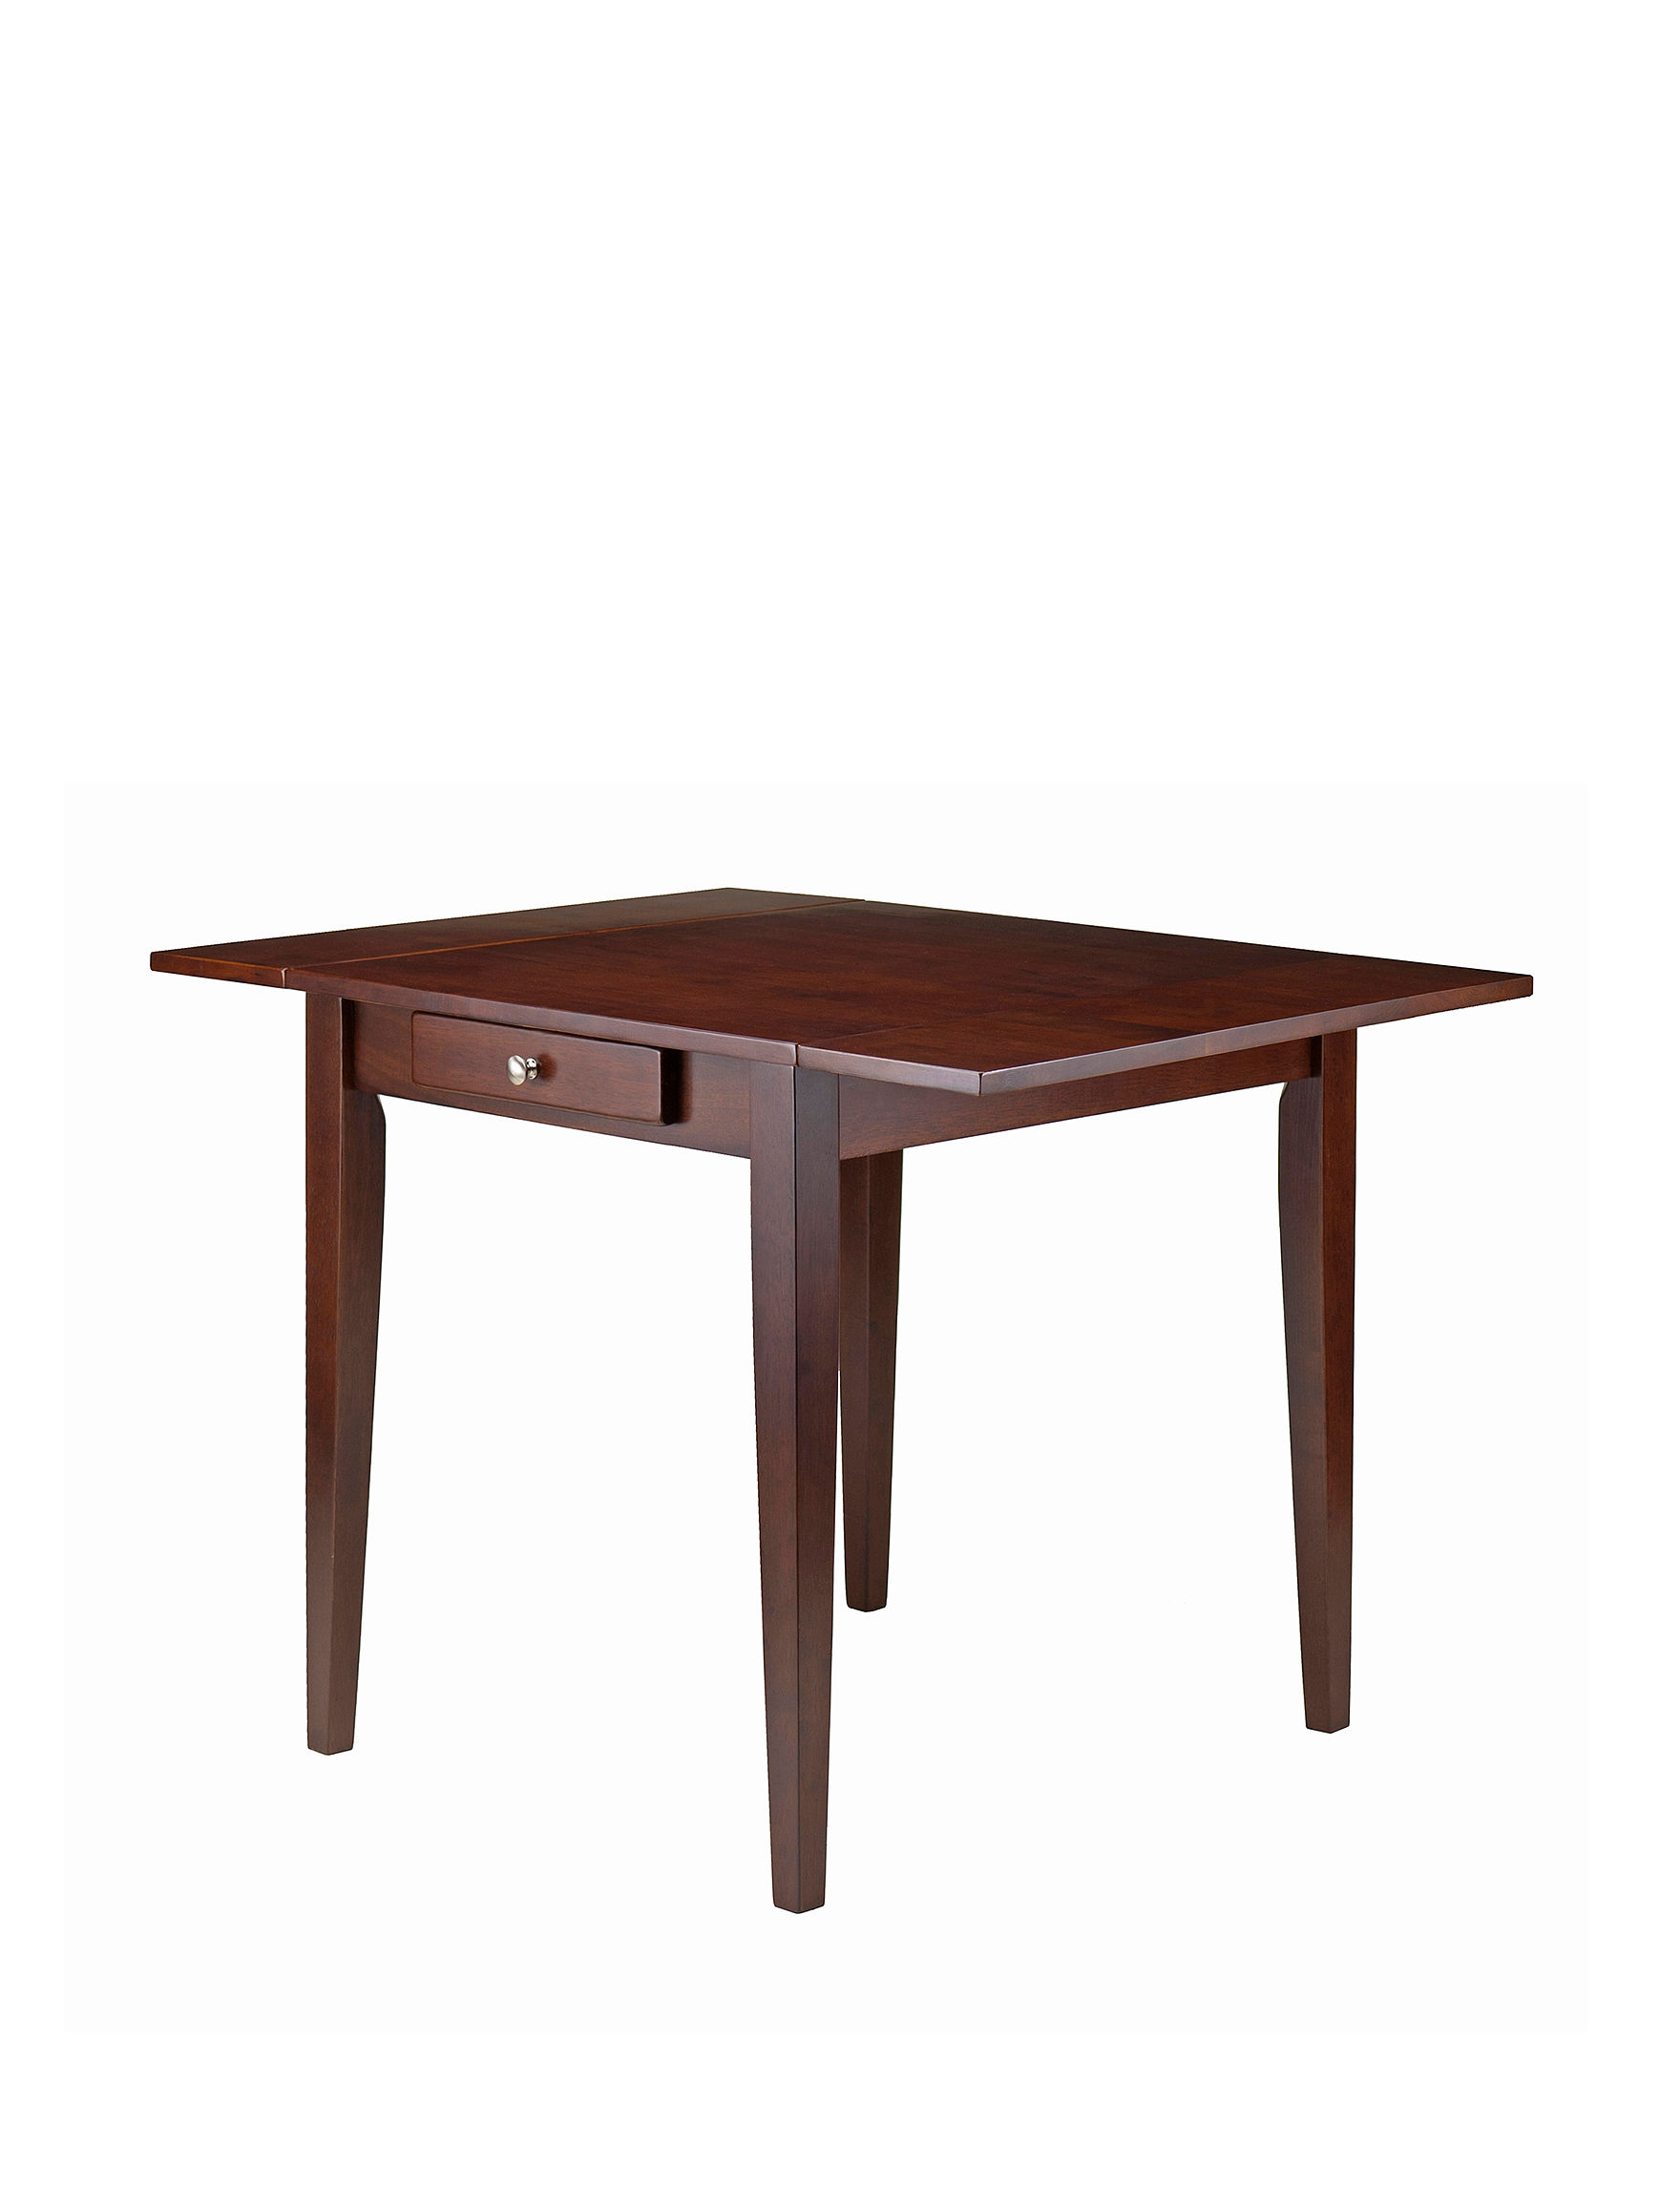 Winsome Brown Dining Tables Kitchen & Dining Furniture